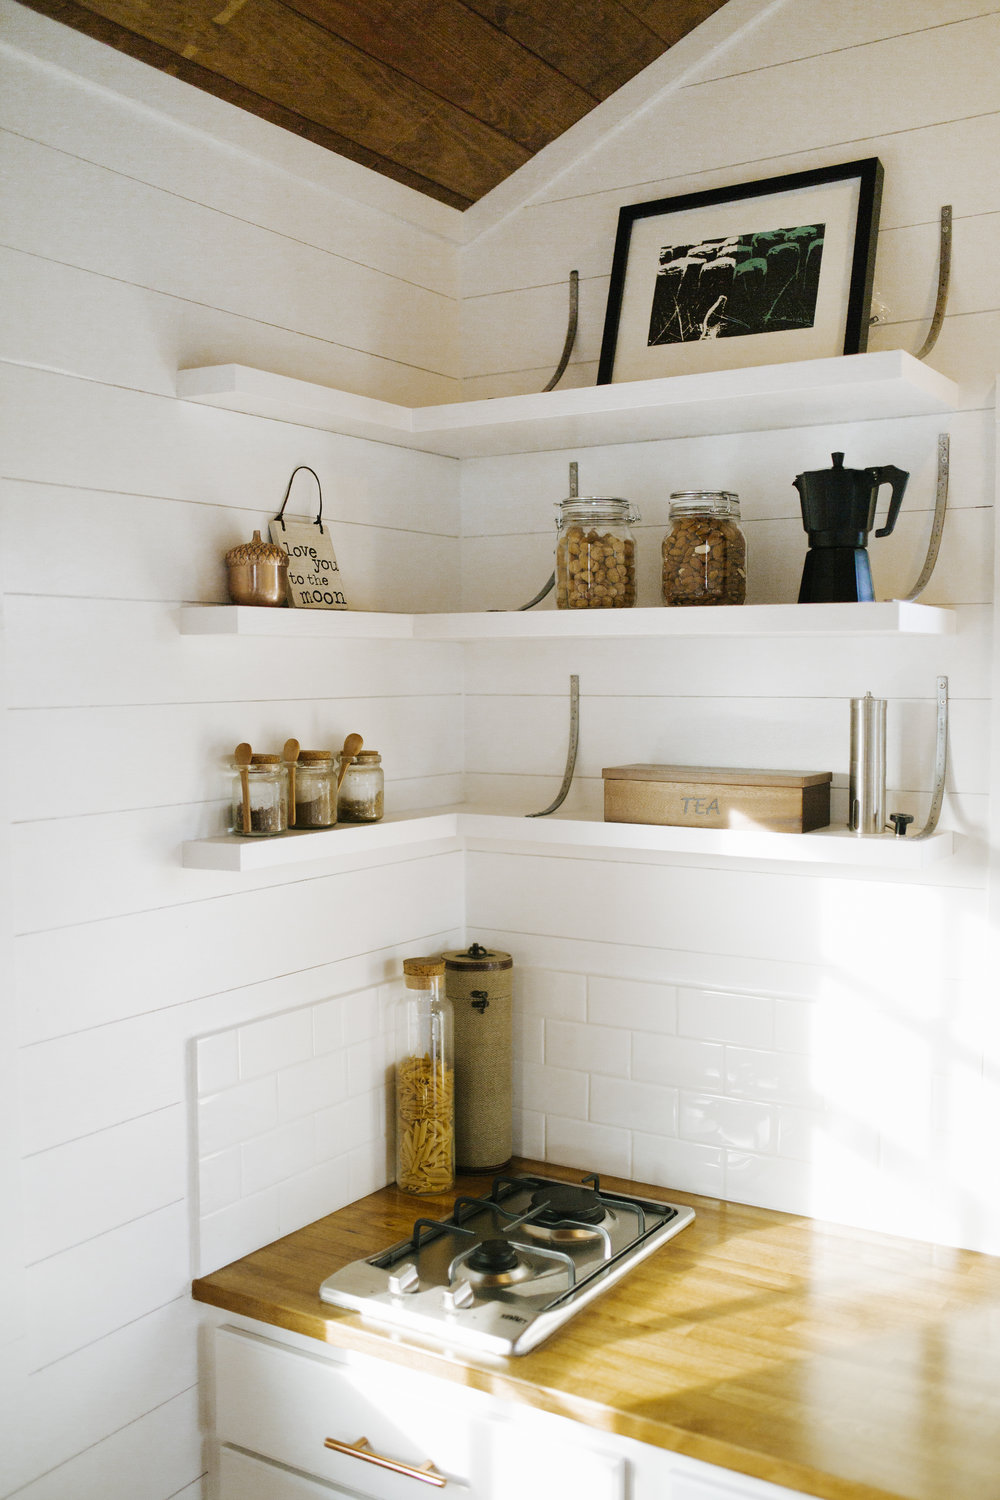 The Monocle by Wind River Tiny Homes - open shelving, custom steel brackets, propane 2 burner stove, butcher block countertops